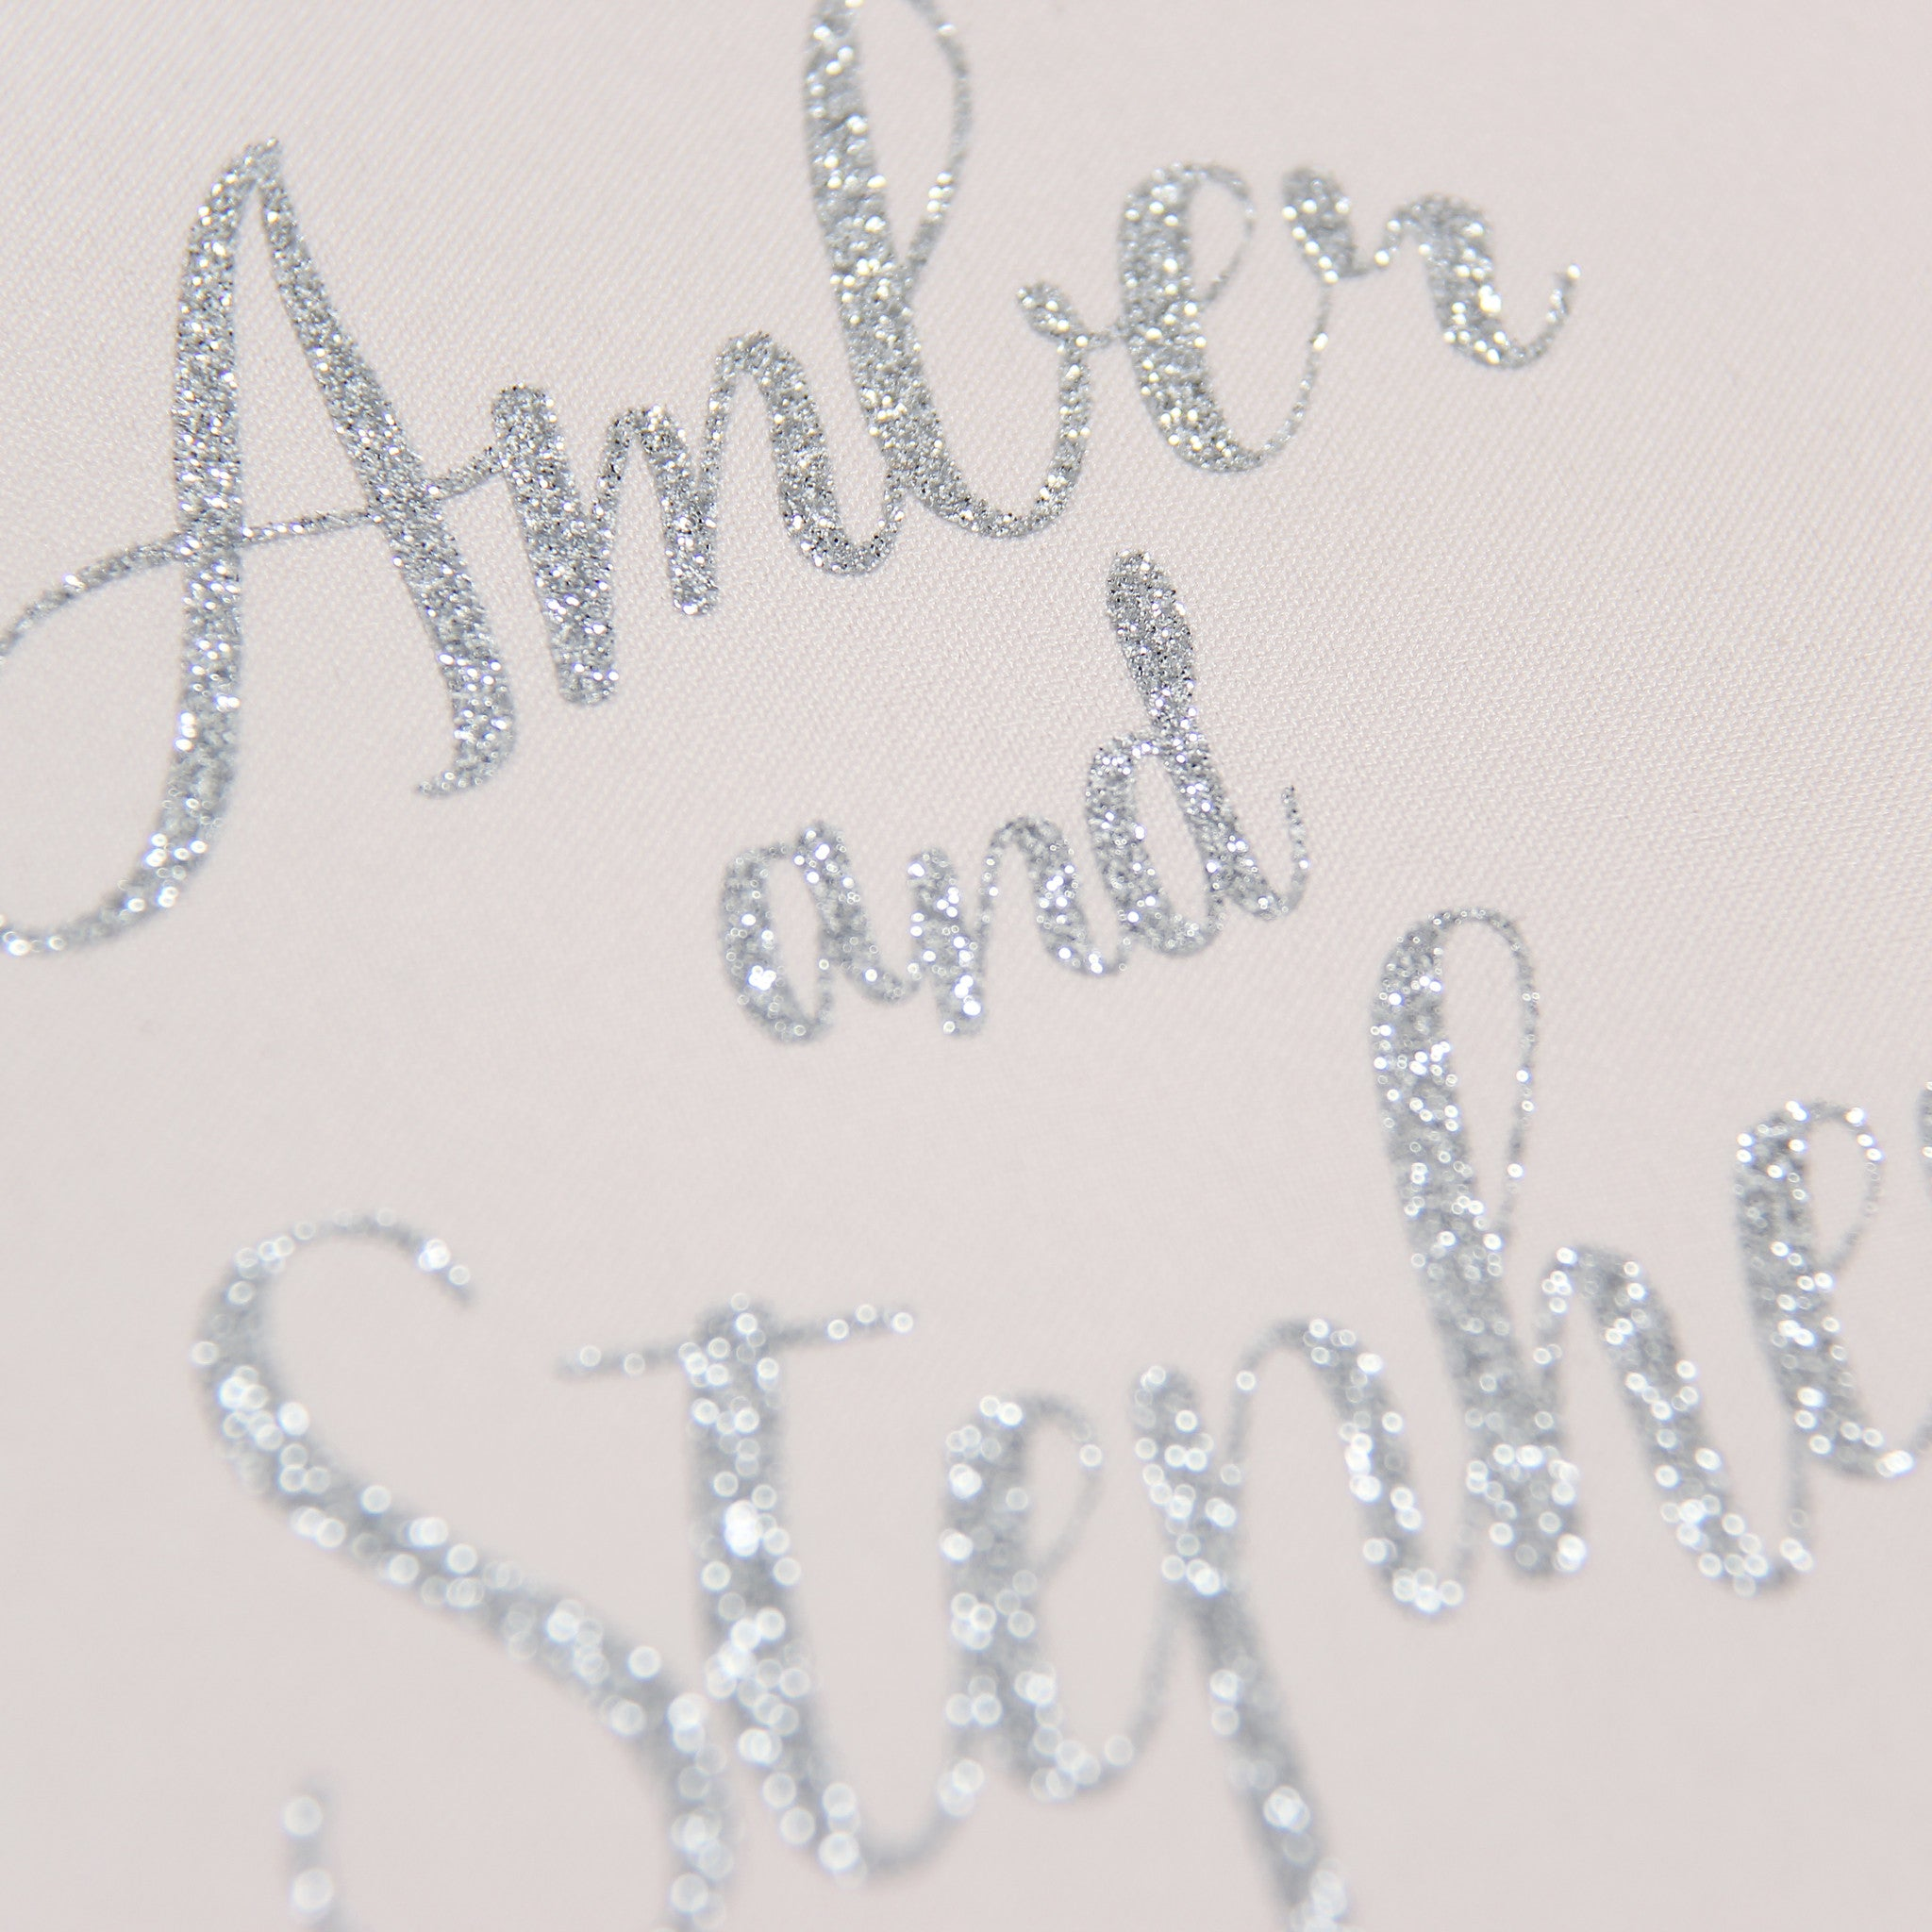 Guest Book Sign in Book Instant Album Cream with Silver Glitter Lettering, Birthday Album by Liumy